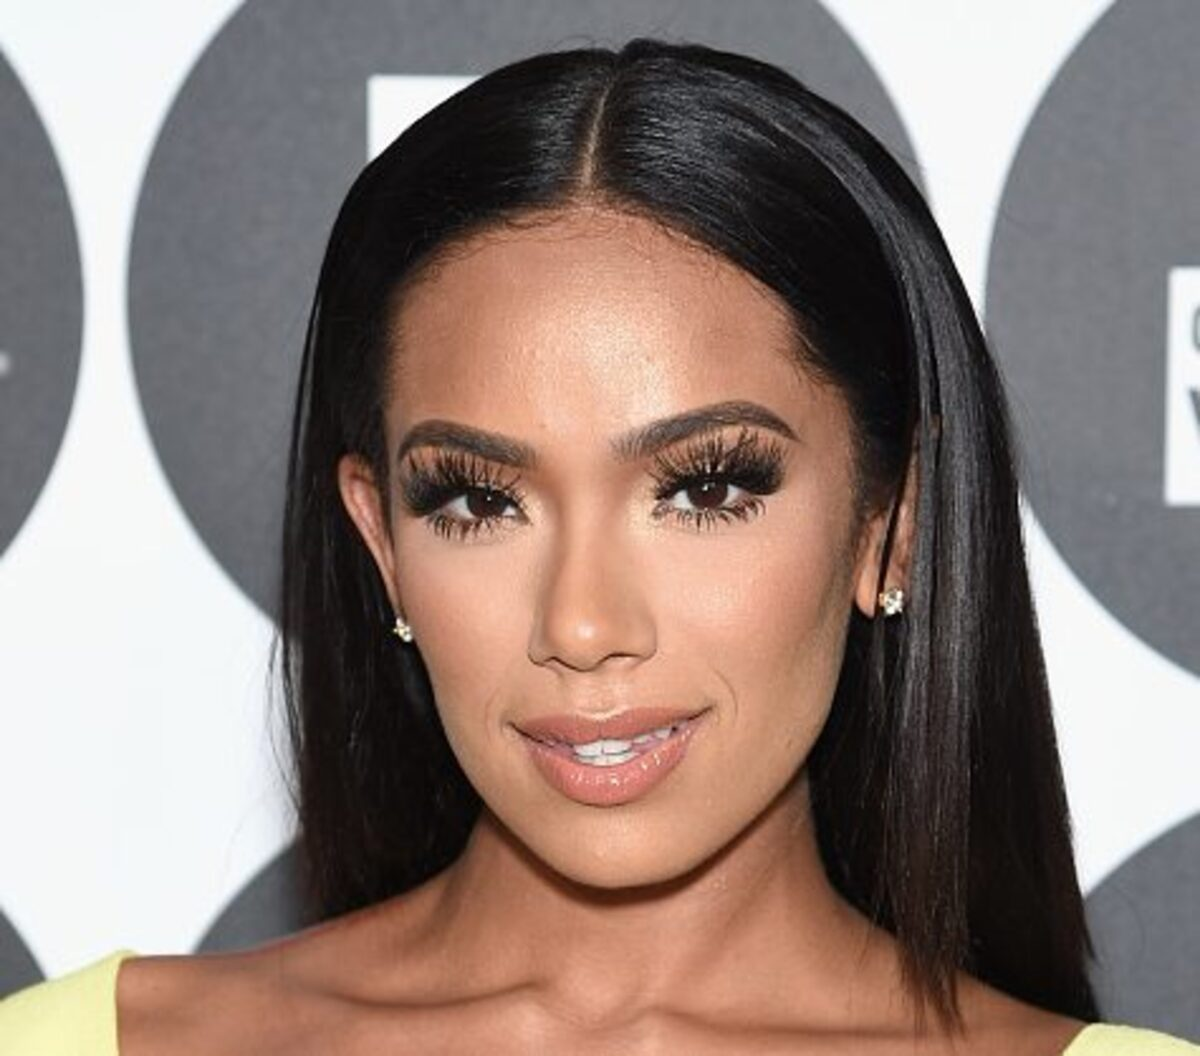 Erica Mena Breaks The Internet With Her Toned Body – Check Out The Photo